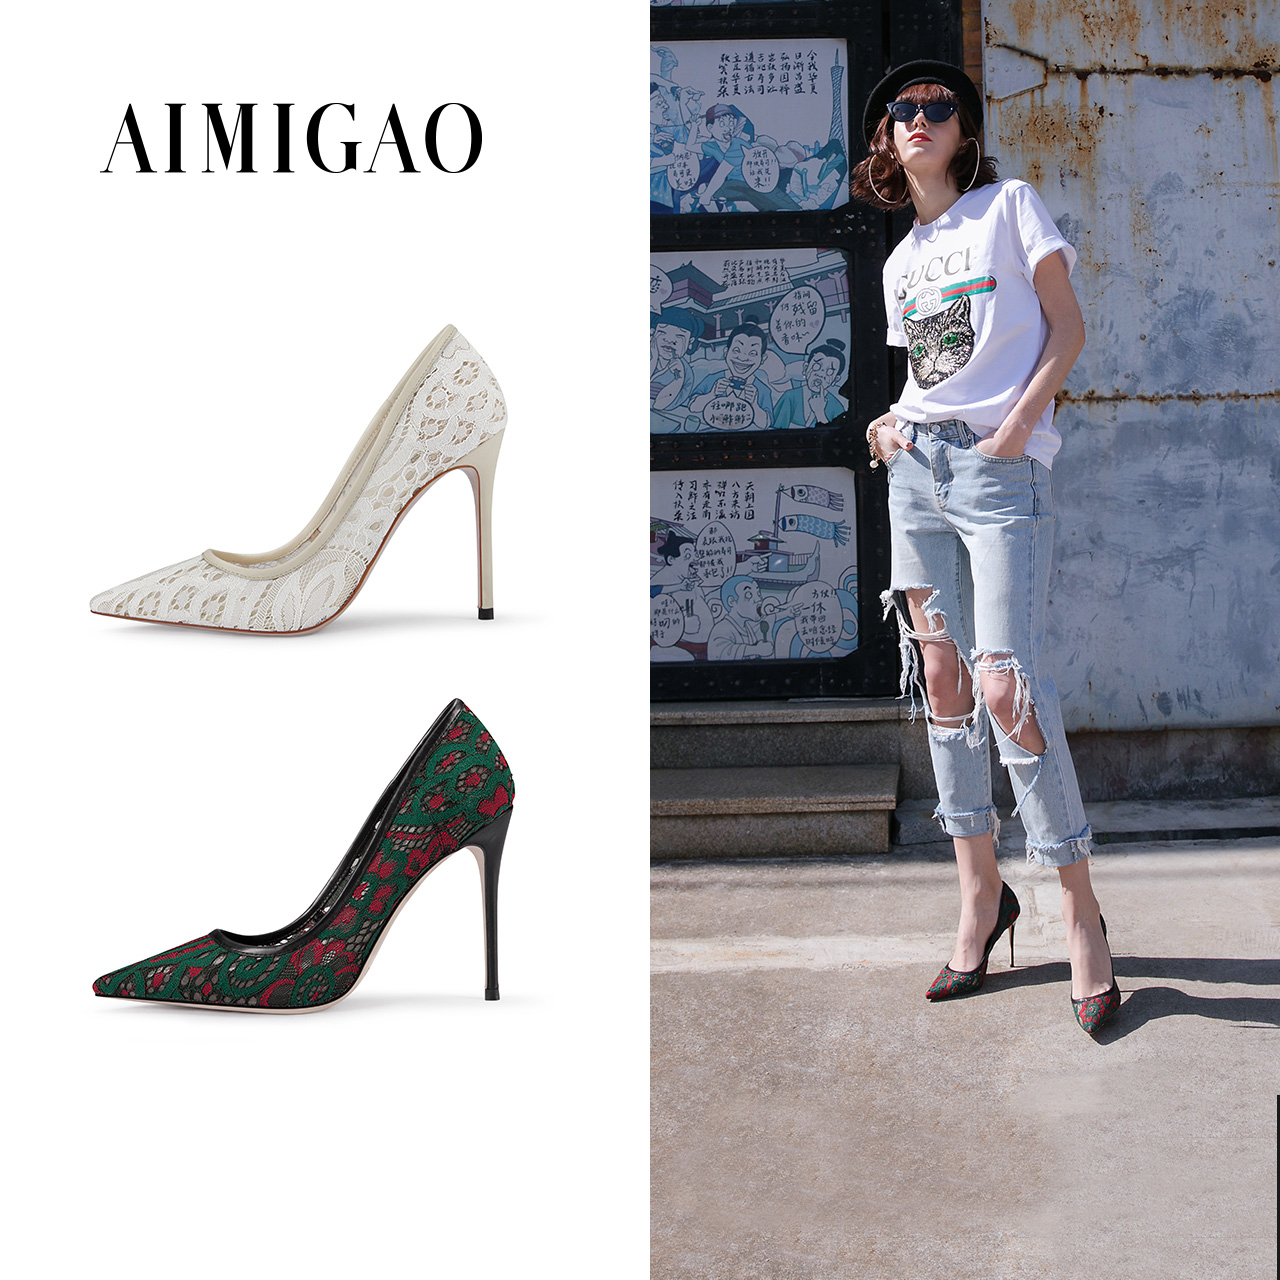 2018 Spring Fashion Green Red Lace Mesh Pointed Toe High Heel Pumps For Women Mixed Colors Ultra High Heel Women Shoes 10.5 cm цена